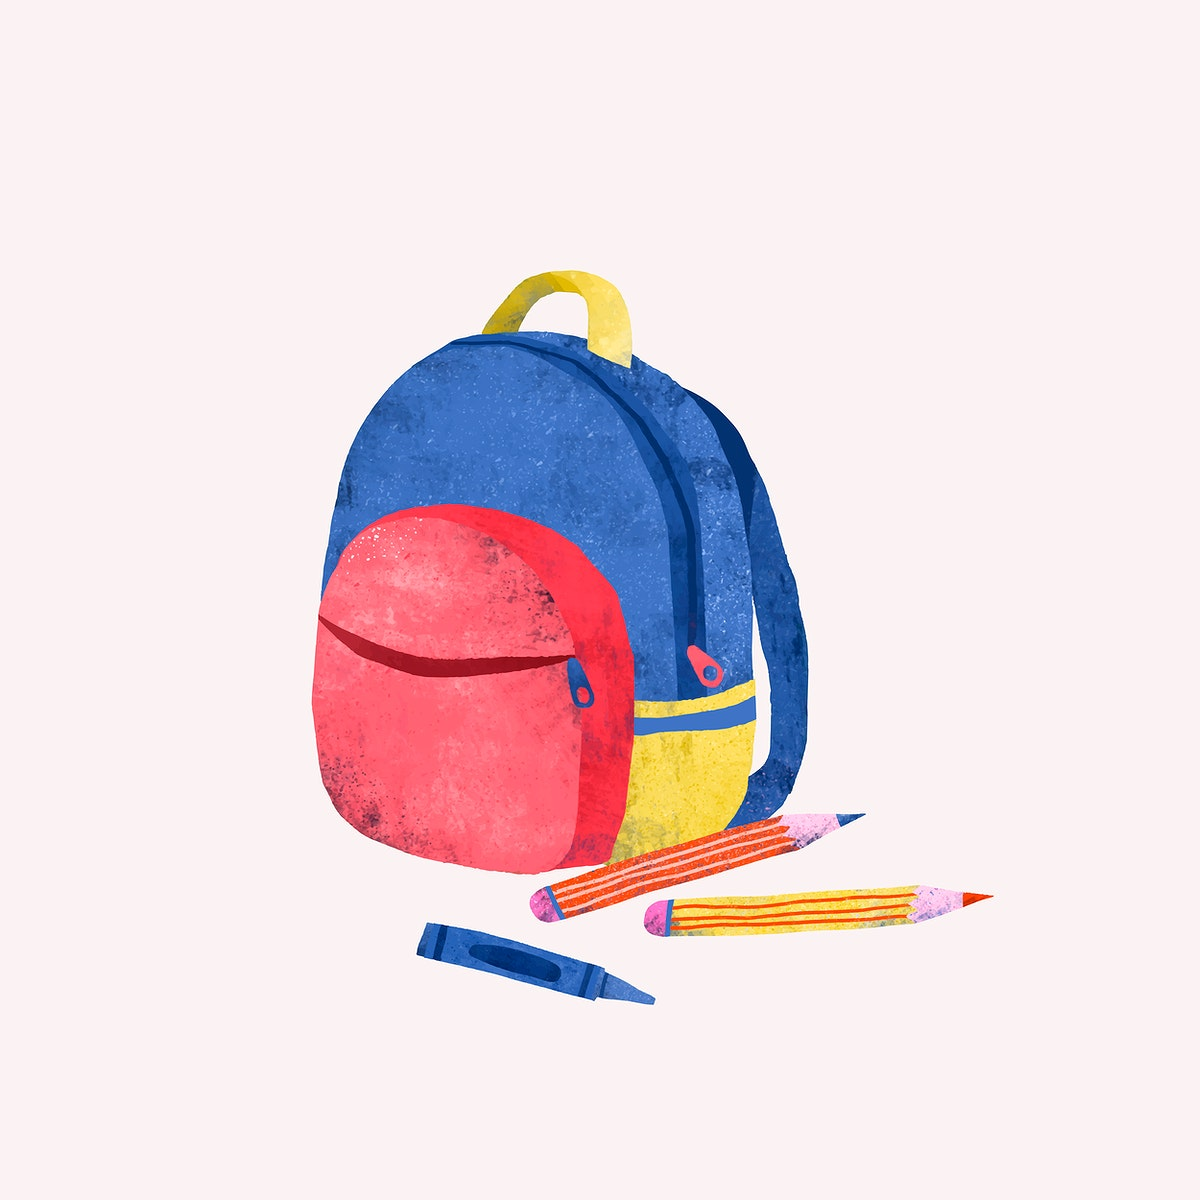 Colorful school backpack doodle vector